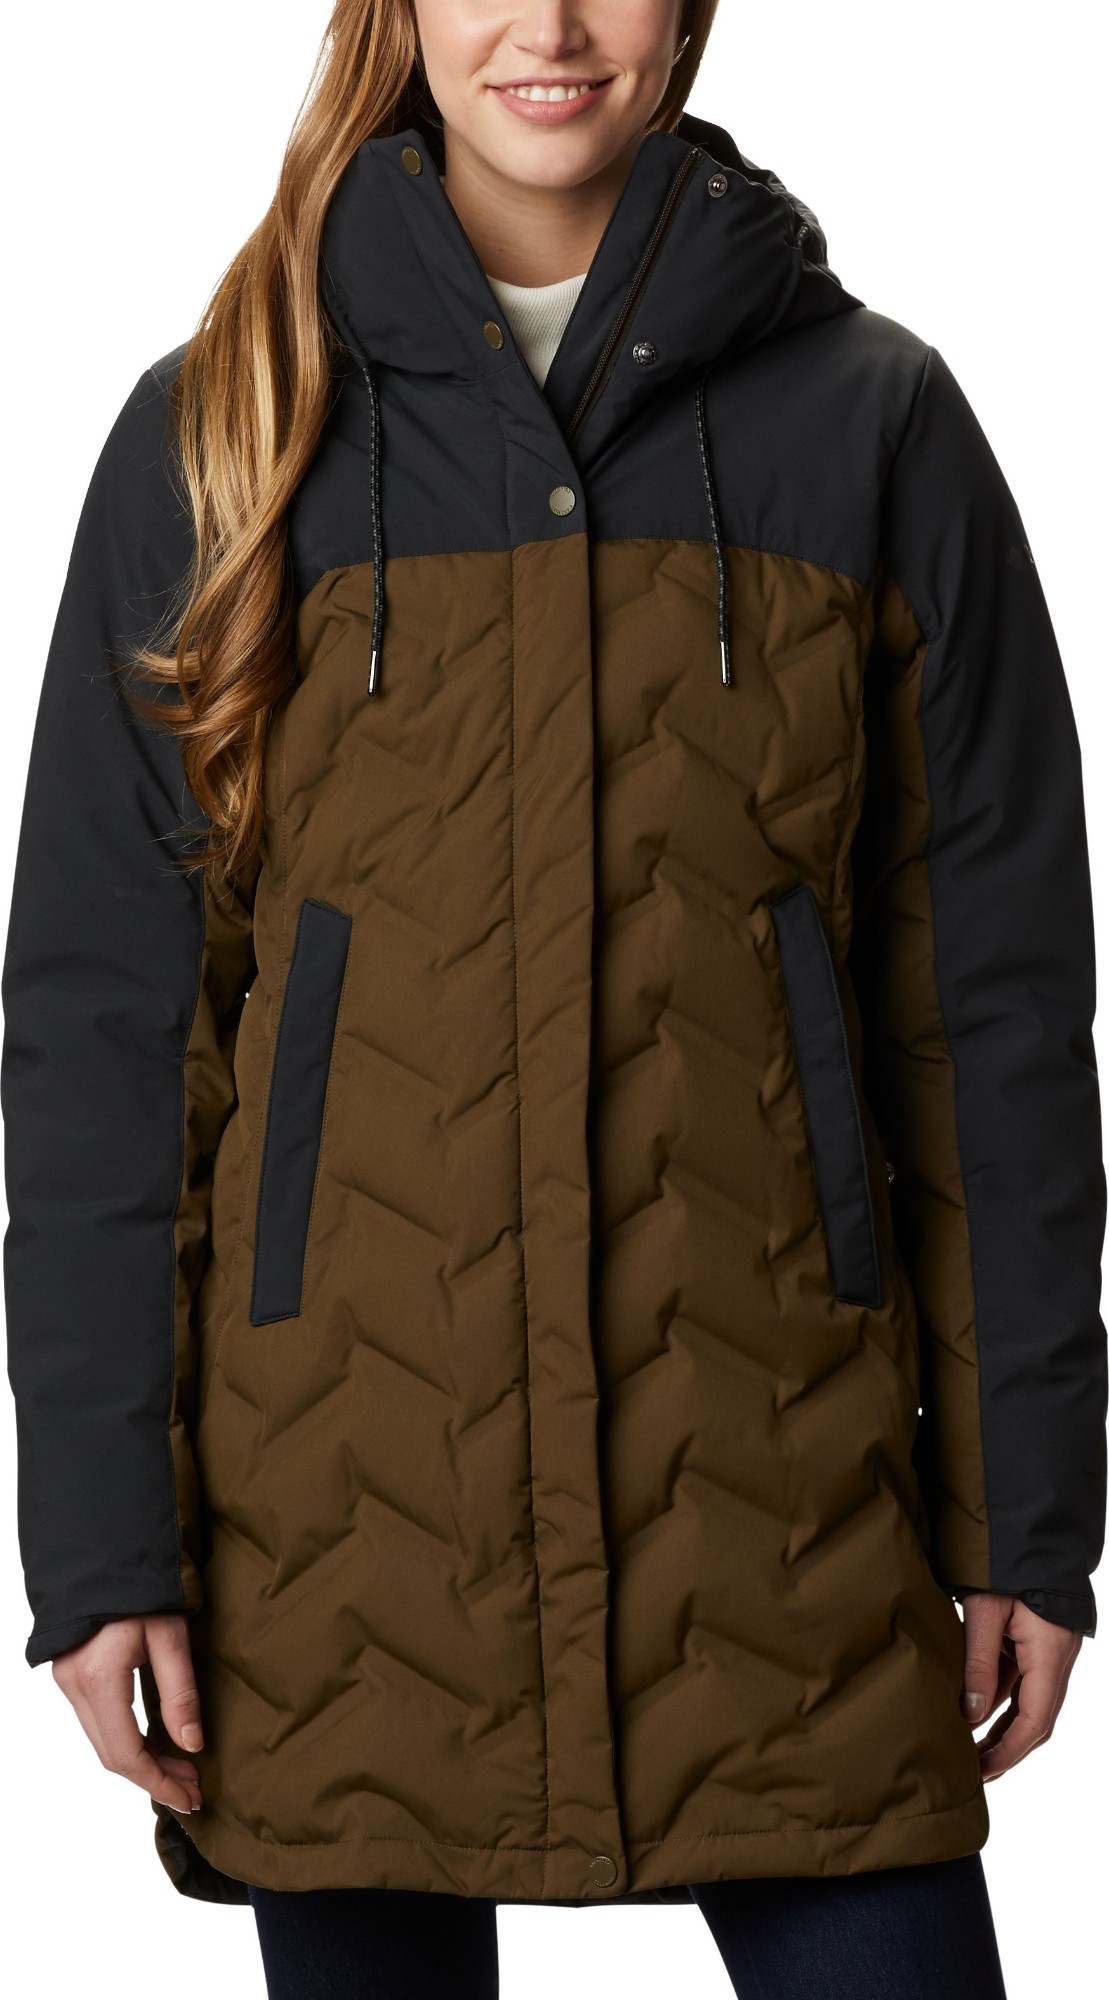 Columbia Mountain Croo Long Down Jacket Women's Olive Green/Black S